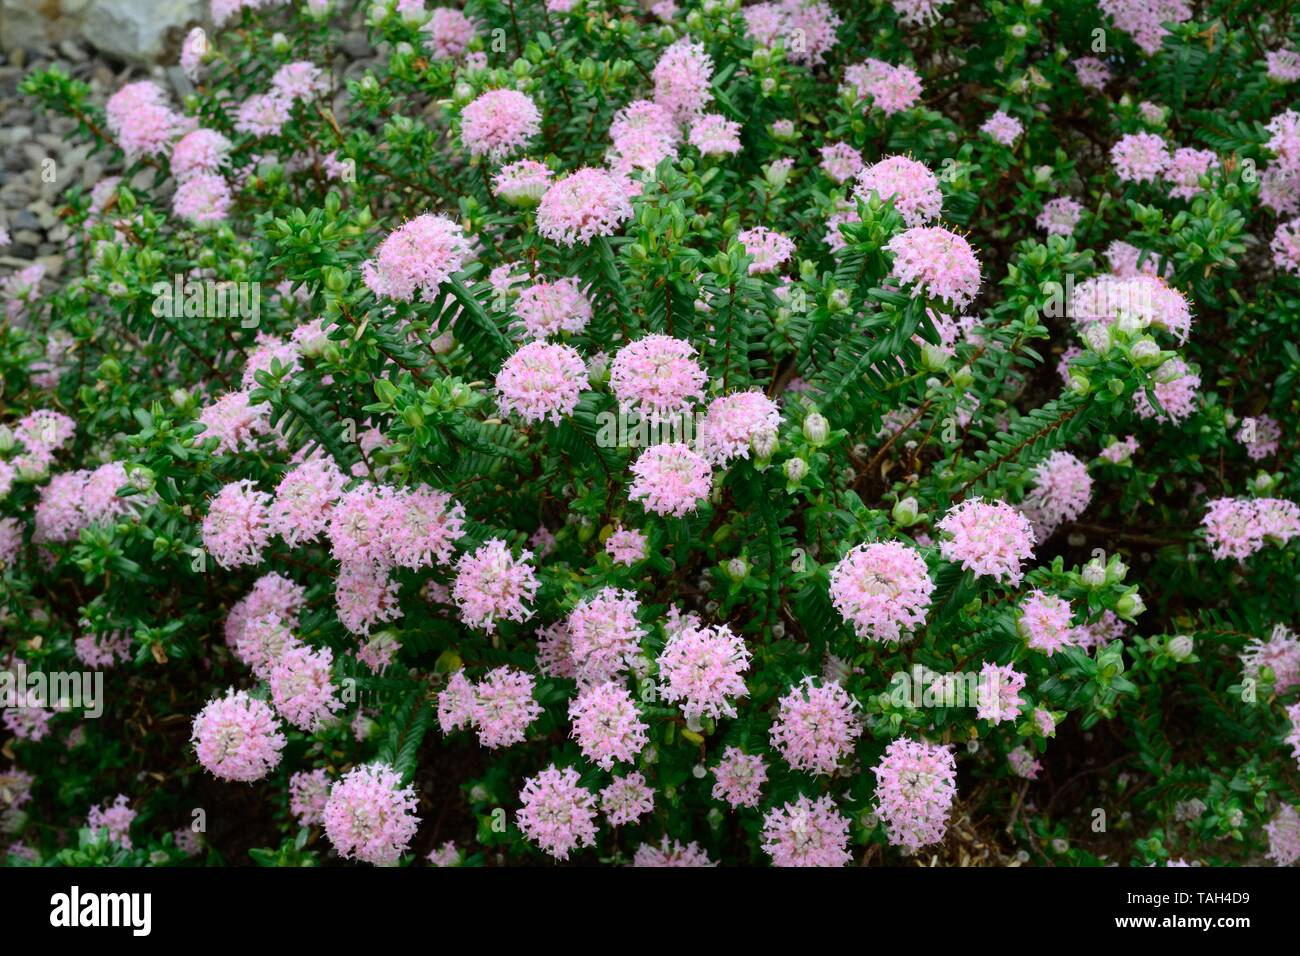 Pimelea ferruginea rice flower flowers - Stock Image